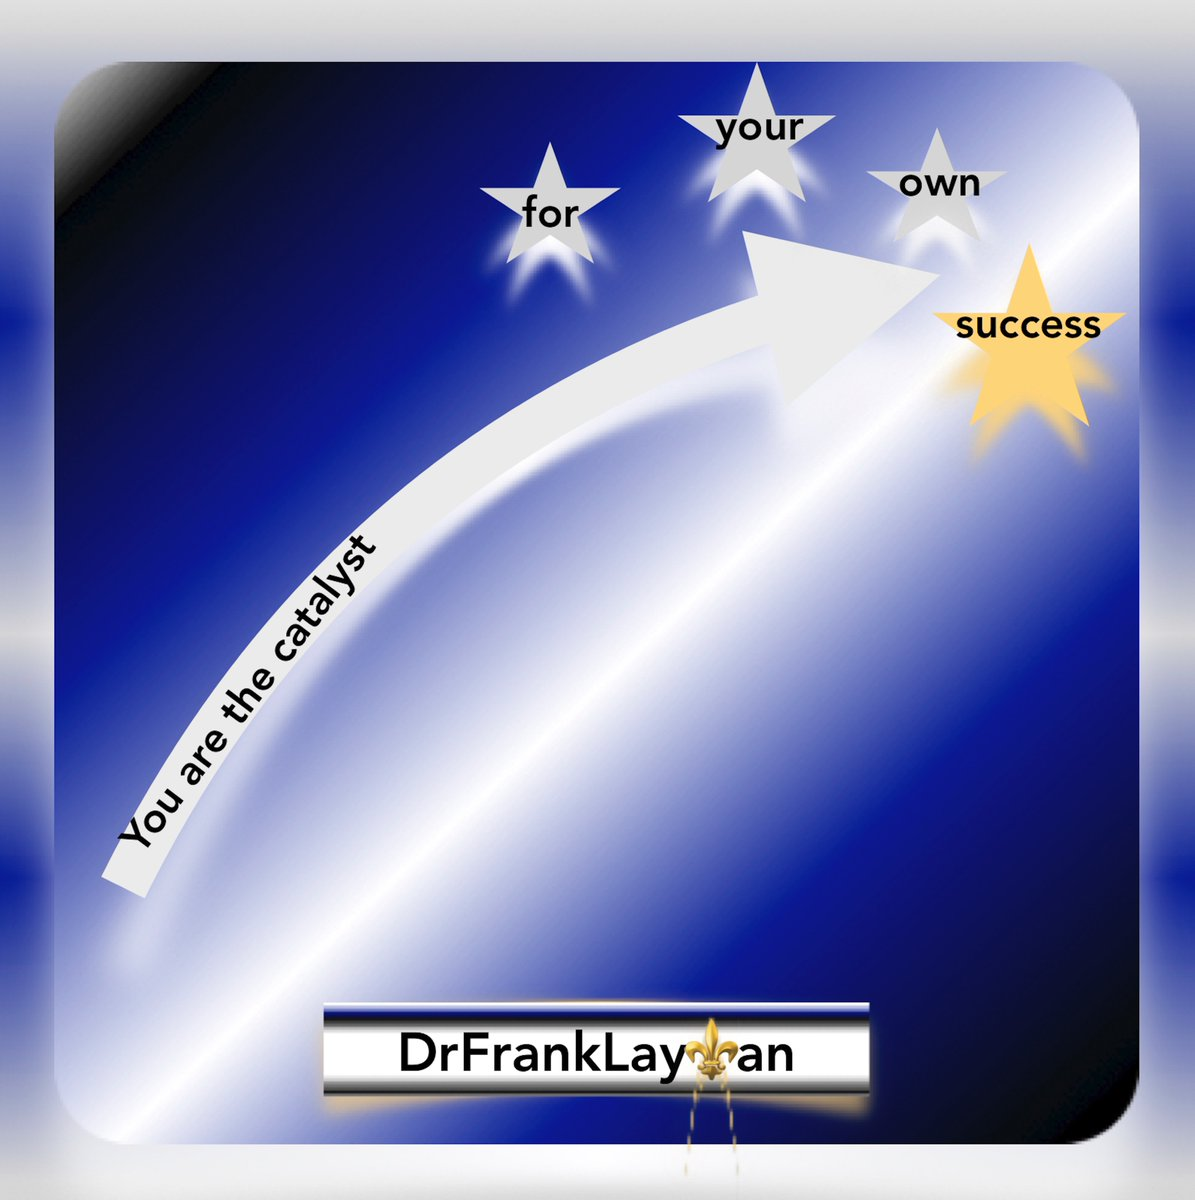 You are the Catalyst for your Own Success. #DrFrankLayman  #success #inspiration #author #writerslife #books #selfhelp #positivemindset #growthmindset  #Read https://t.co/KIgaS20ig7  https://t.co/IY9krUkjp4 https://t.co/dGiIsvbwVl